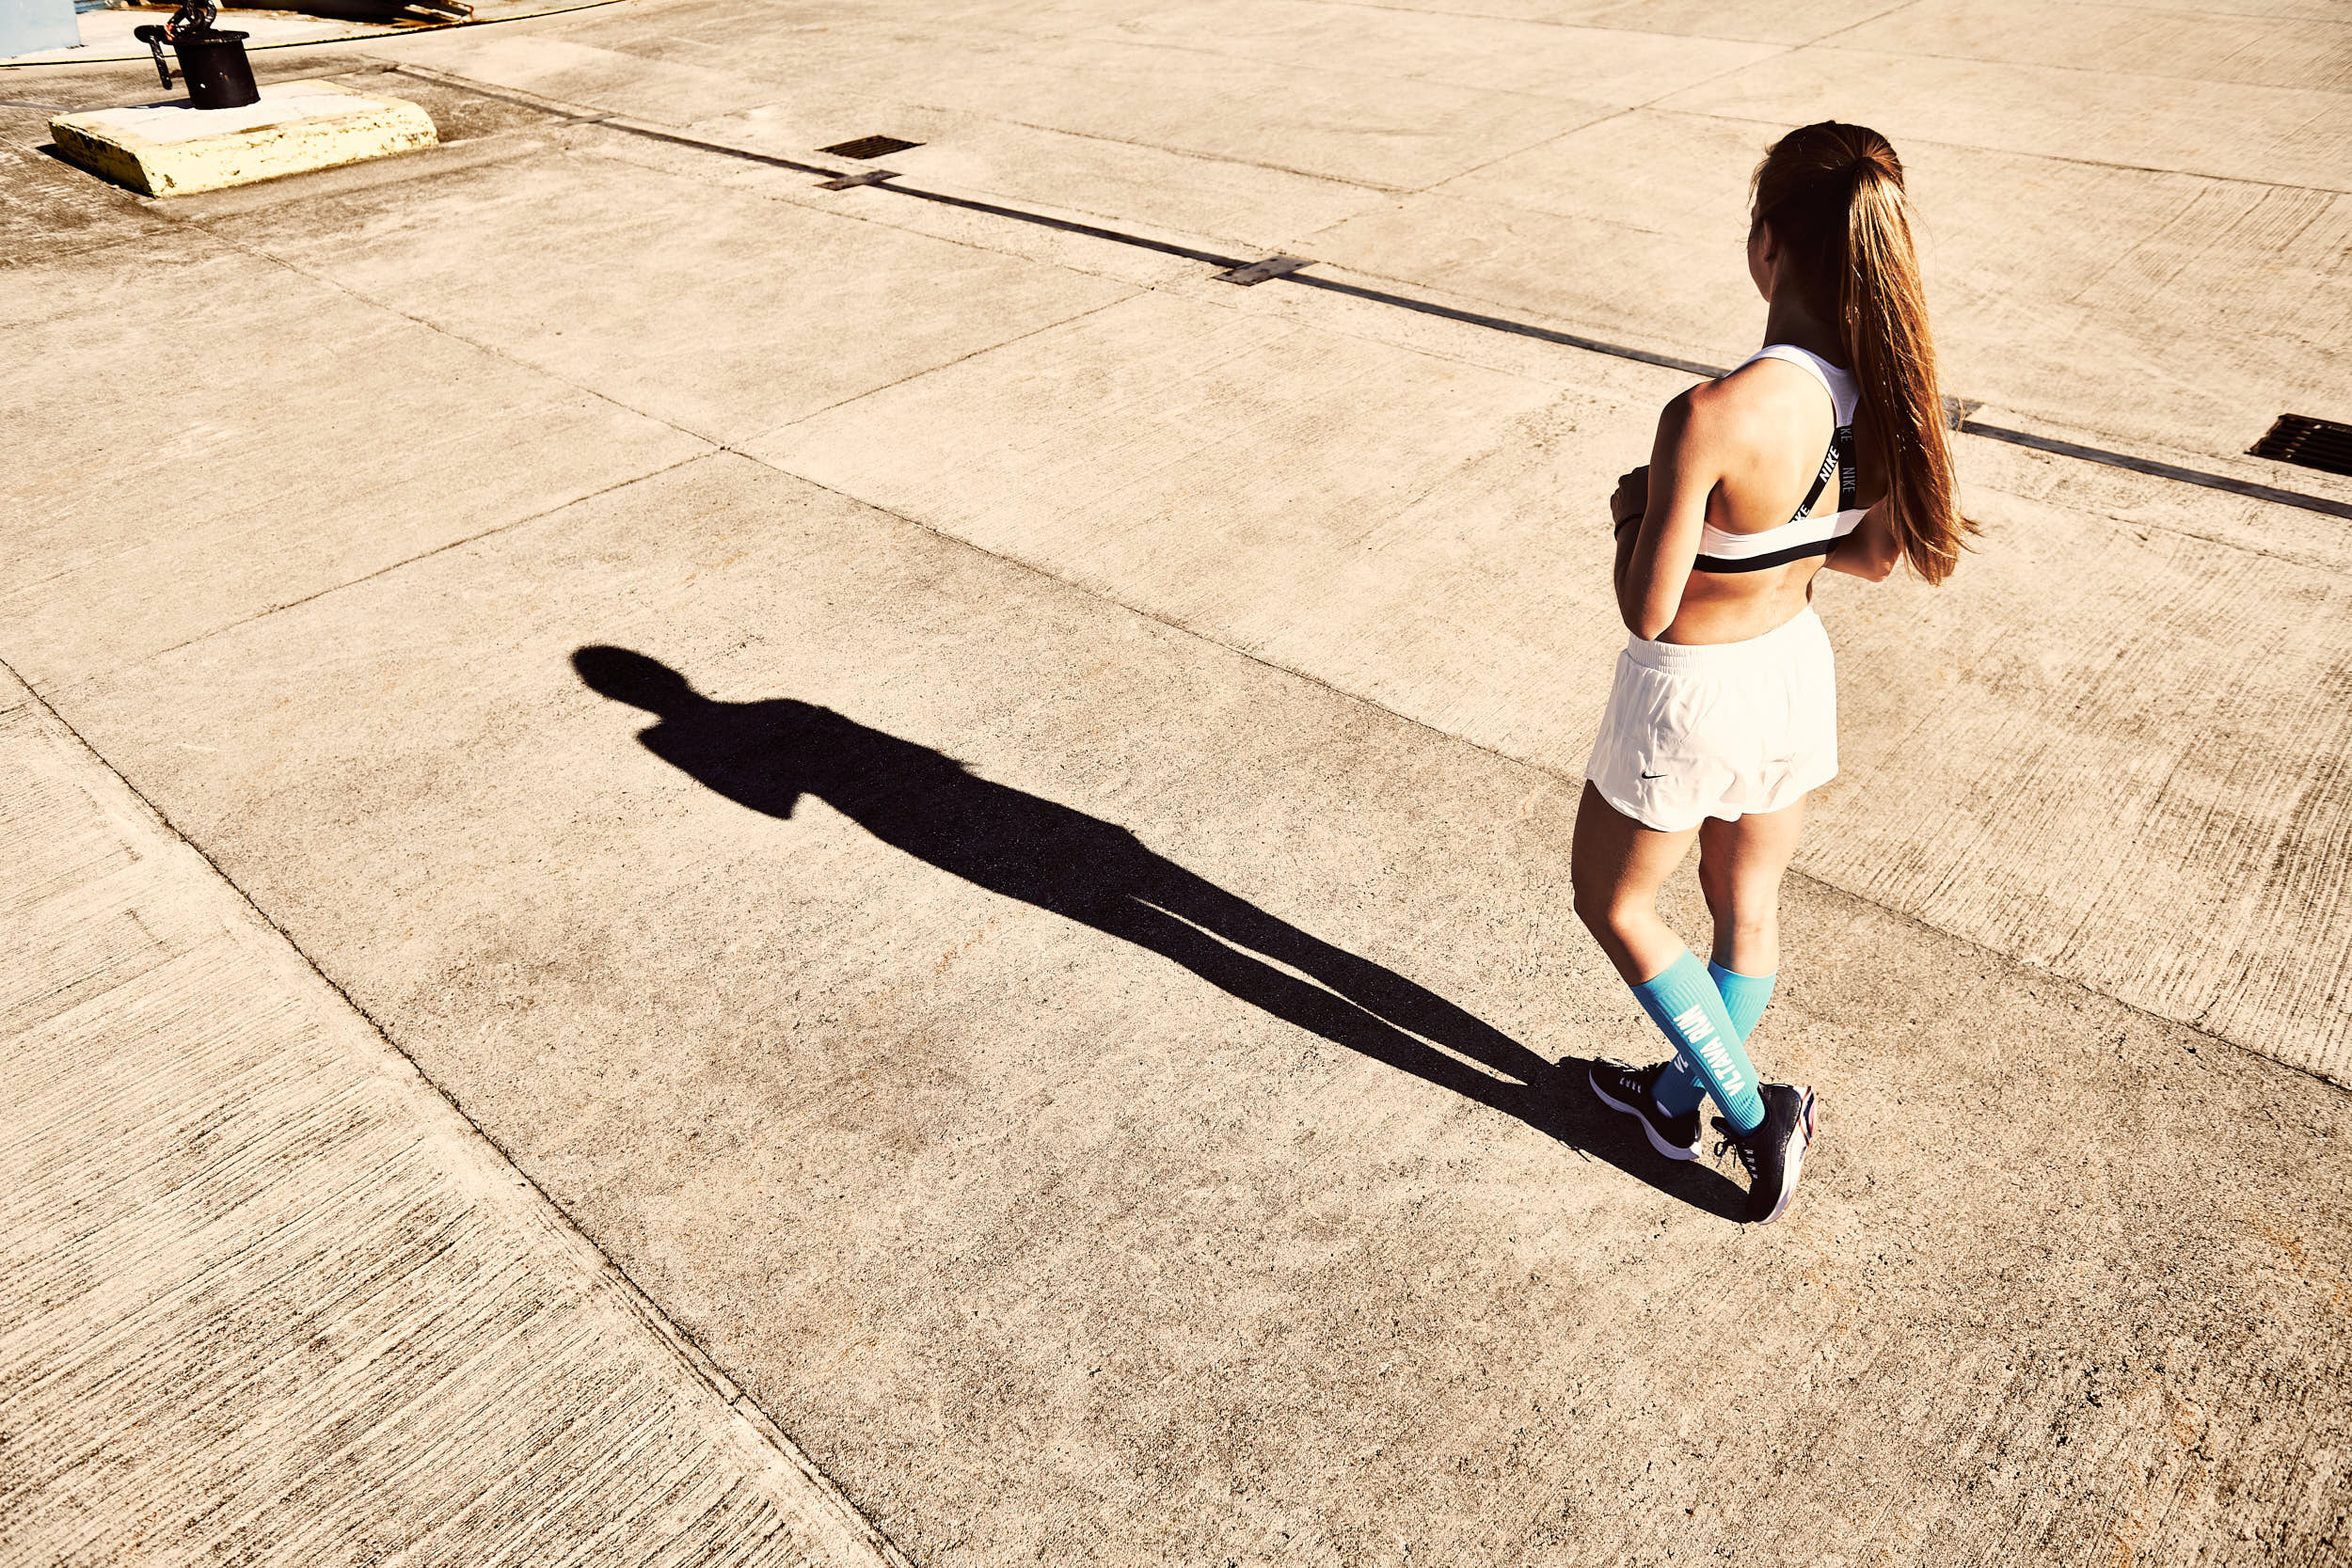 Girl posing in running apparel. Photograph with strong contrast and long shadows.